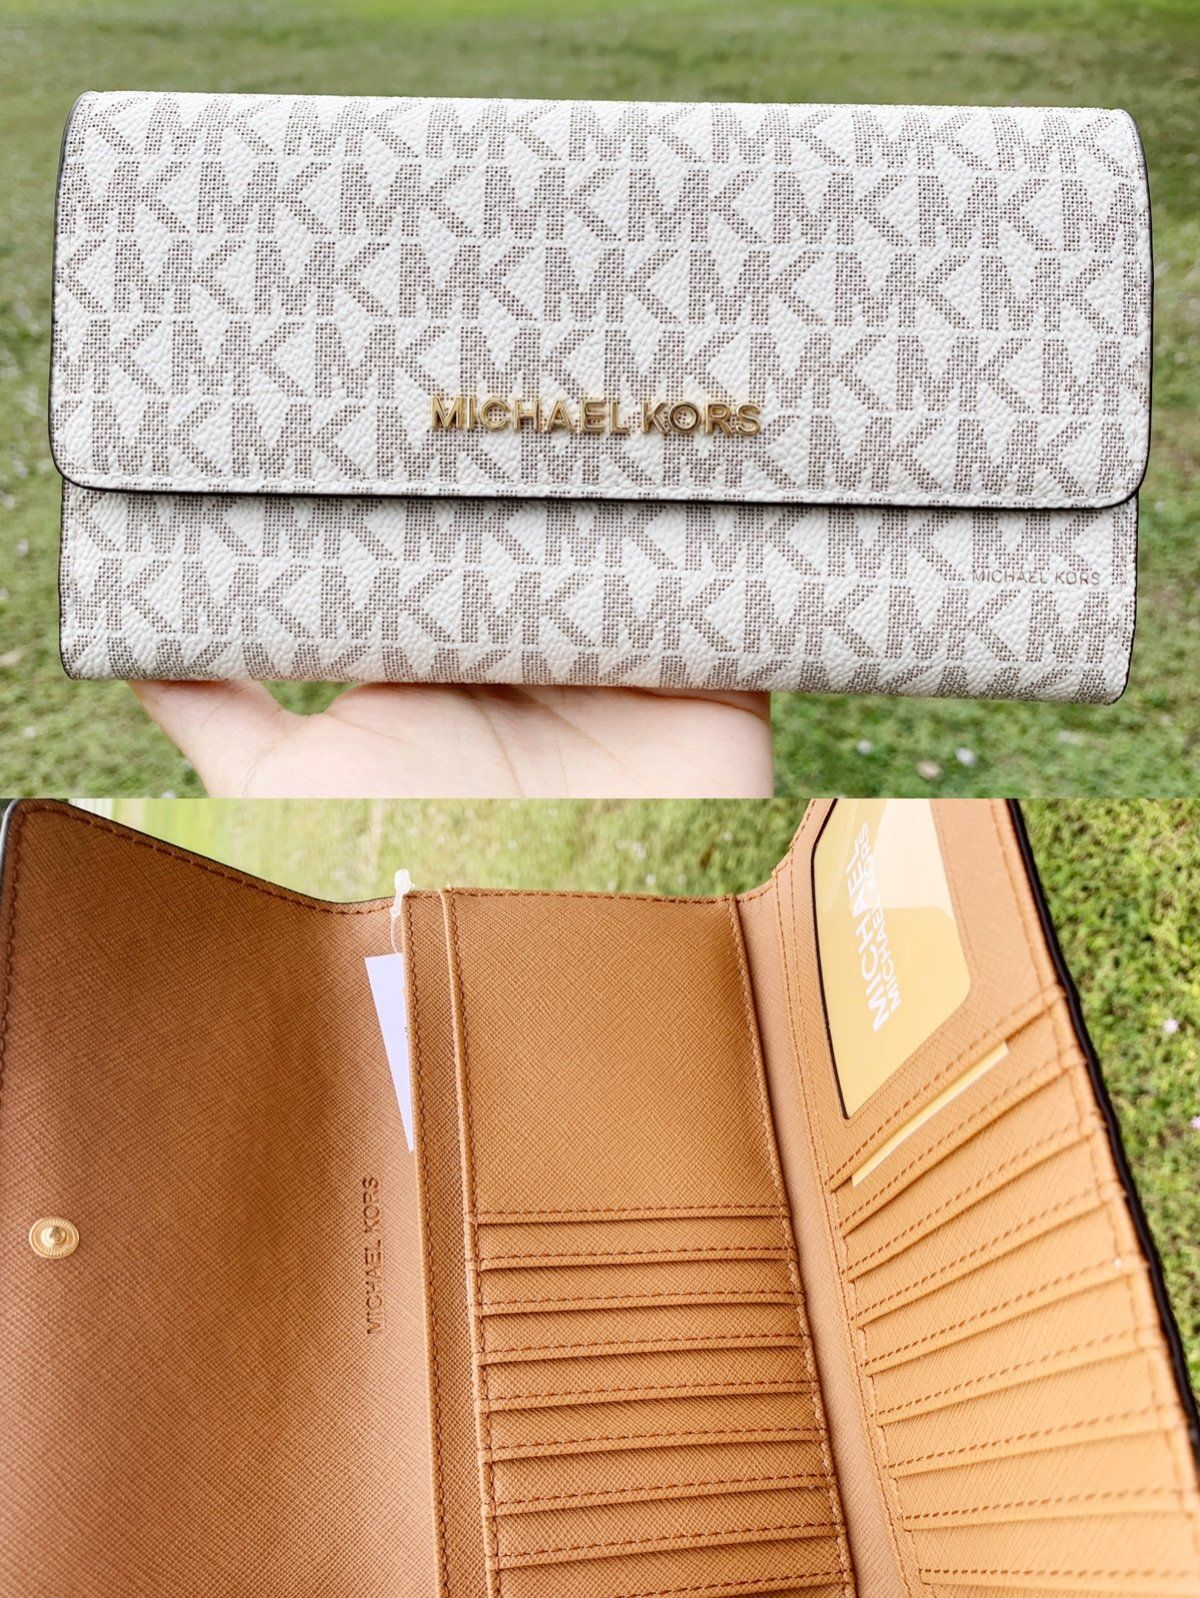 1fad1a2381ead2 Michael Kors Jet Set Travel PVC Large Trifold Wallet Vanilla MK Acorn #eBay  #amazon #posher #toprated #ebaystore #poshpackages #ebaybusiness #GabysBags  ...